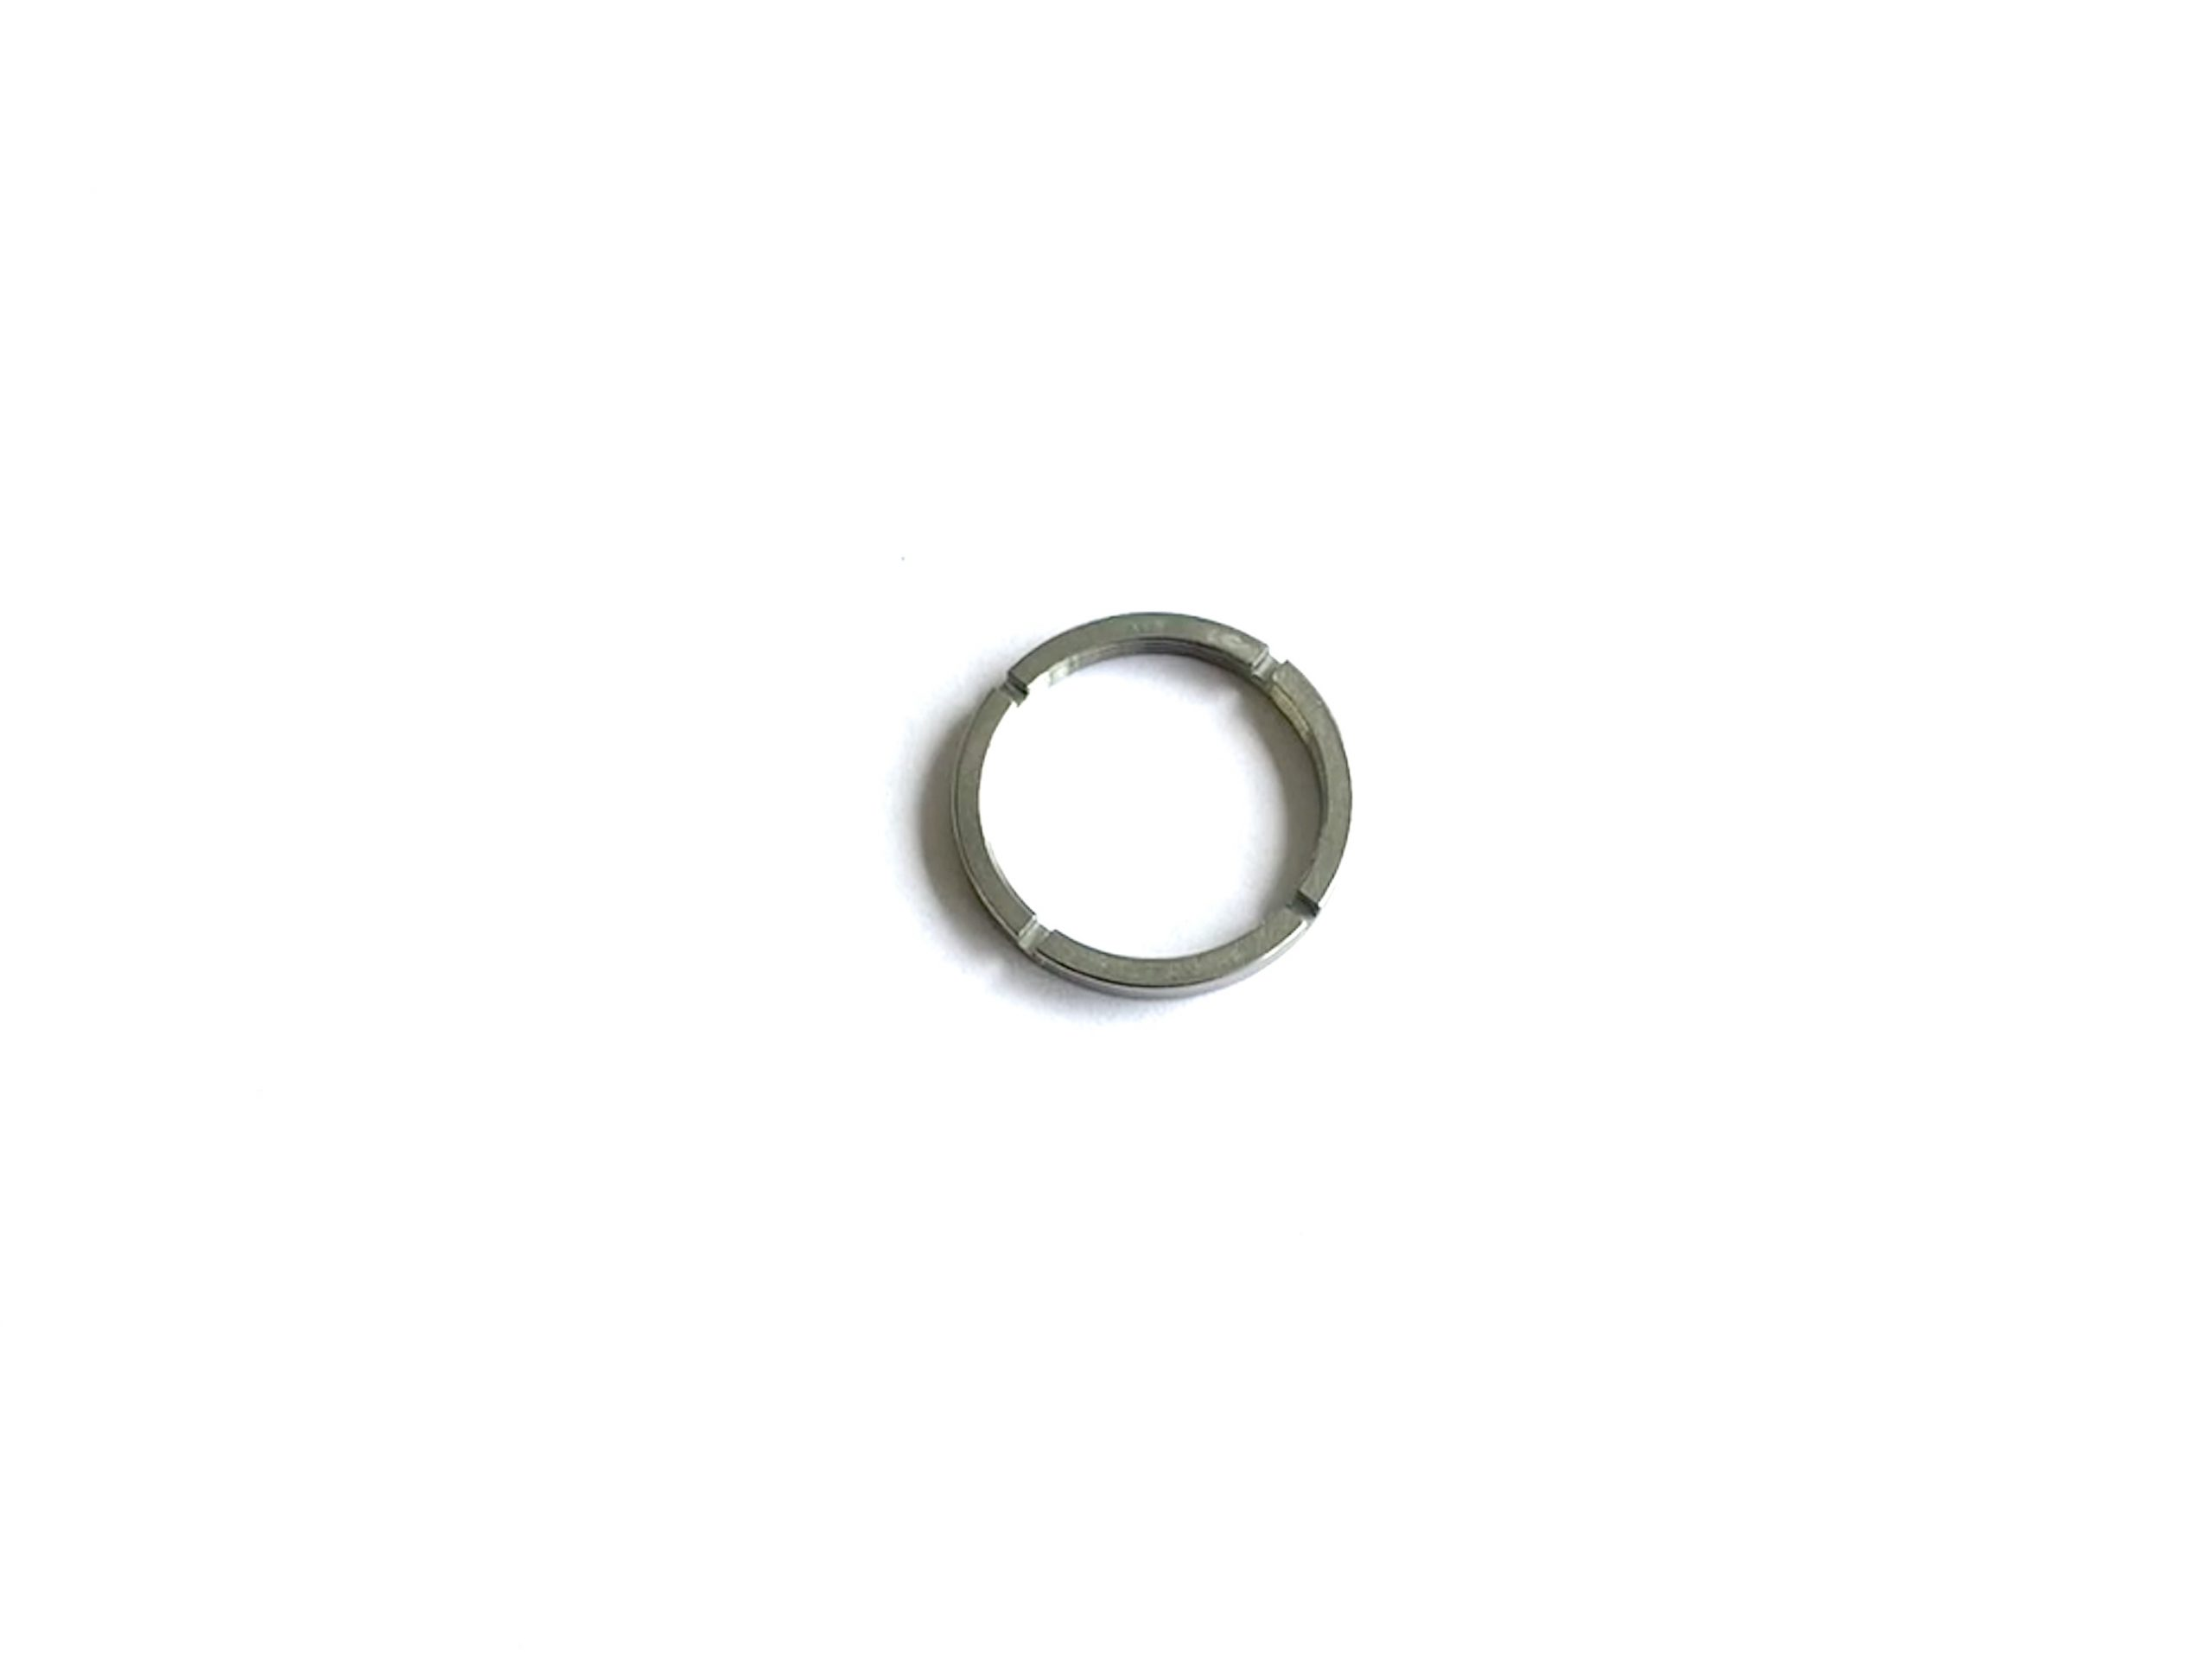 RP10097 Nut-proximal insertion tube fitting CF-H180Di:L